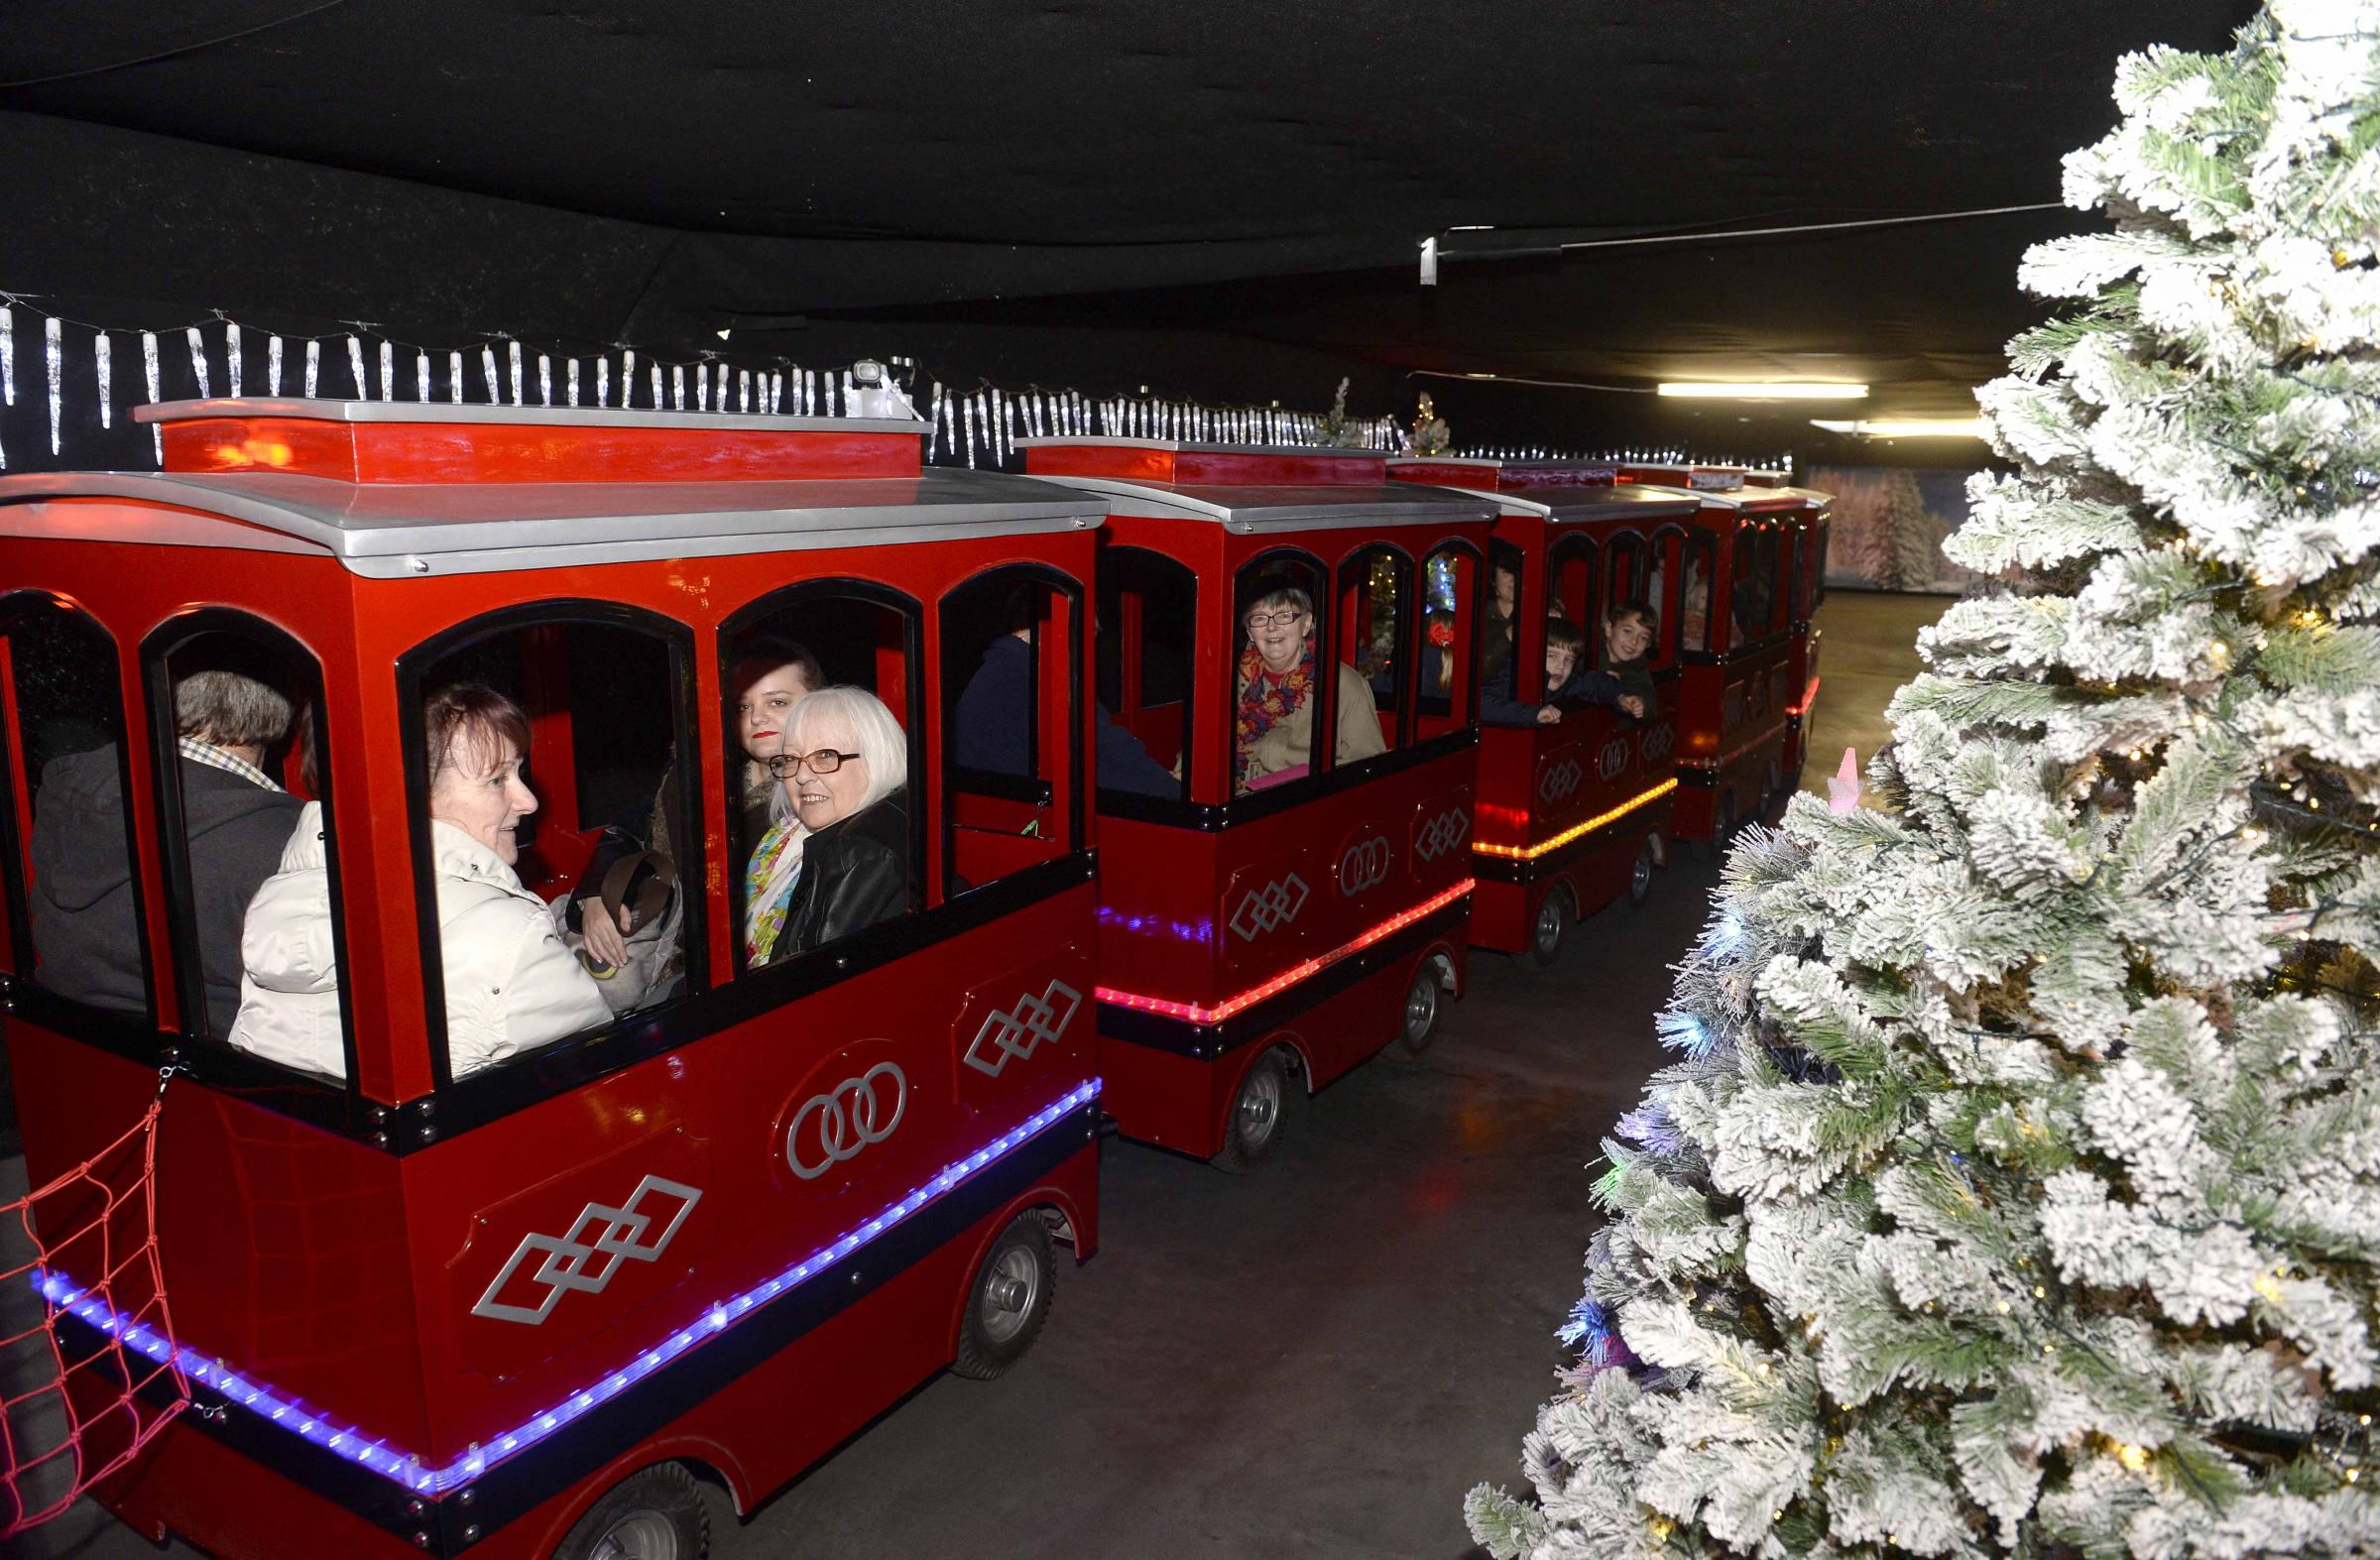 CHRISTMAS CANCELLED: The Santa train pictured at St Johns Plant Centre in 2015